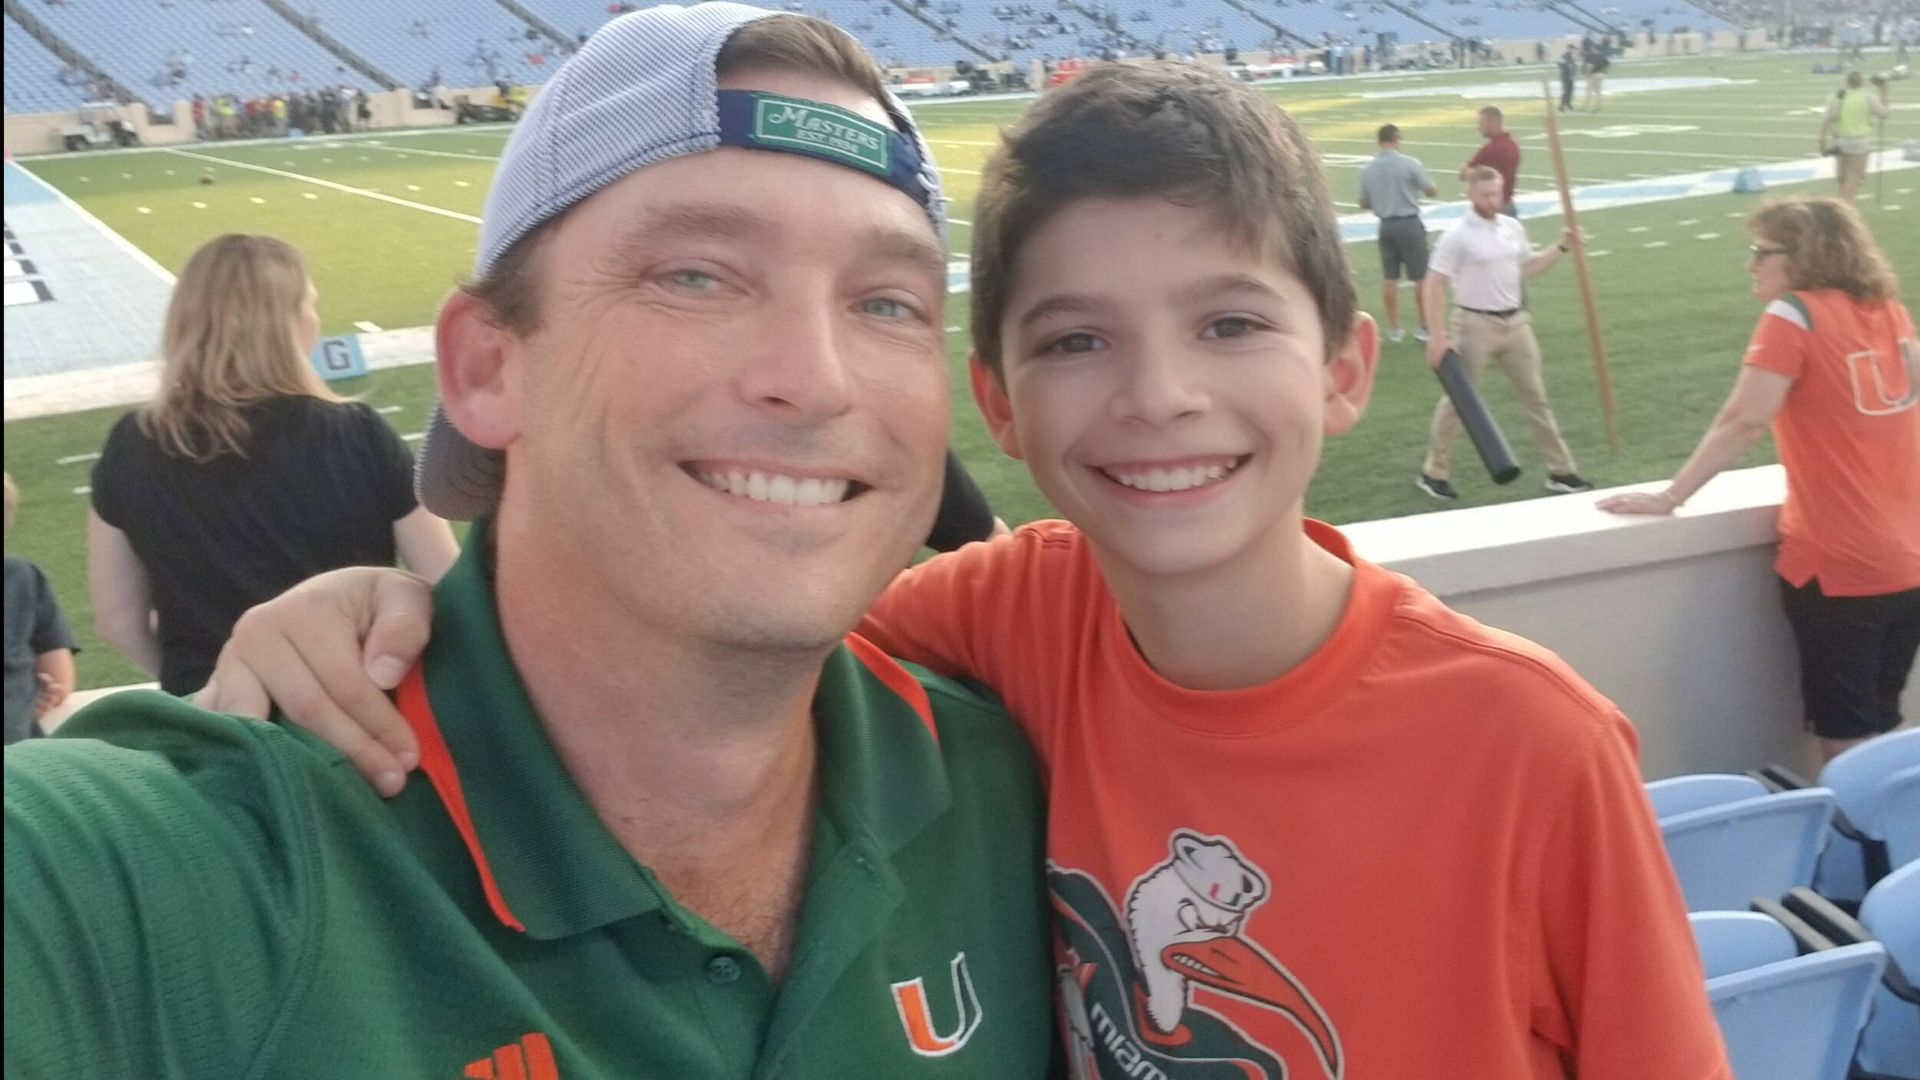 Seasoned Canes: Fans Share Their Stories